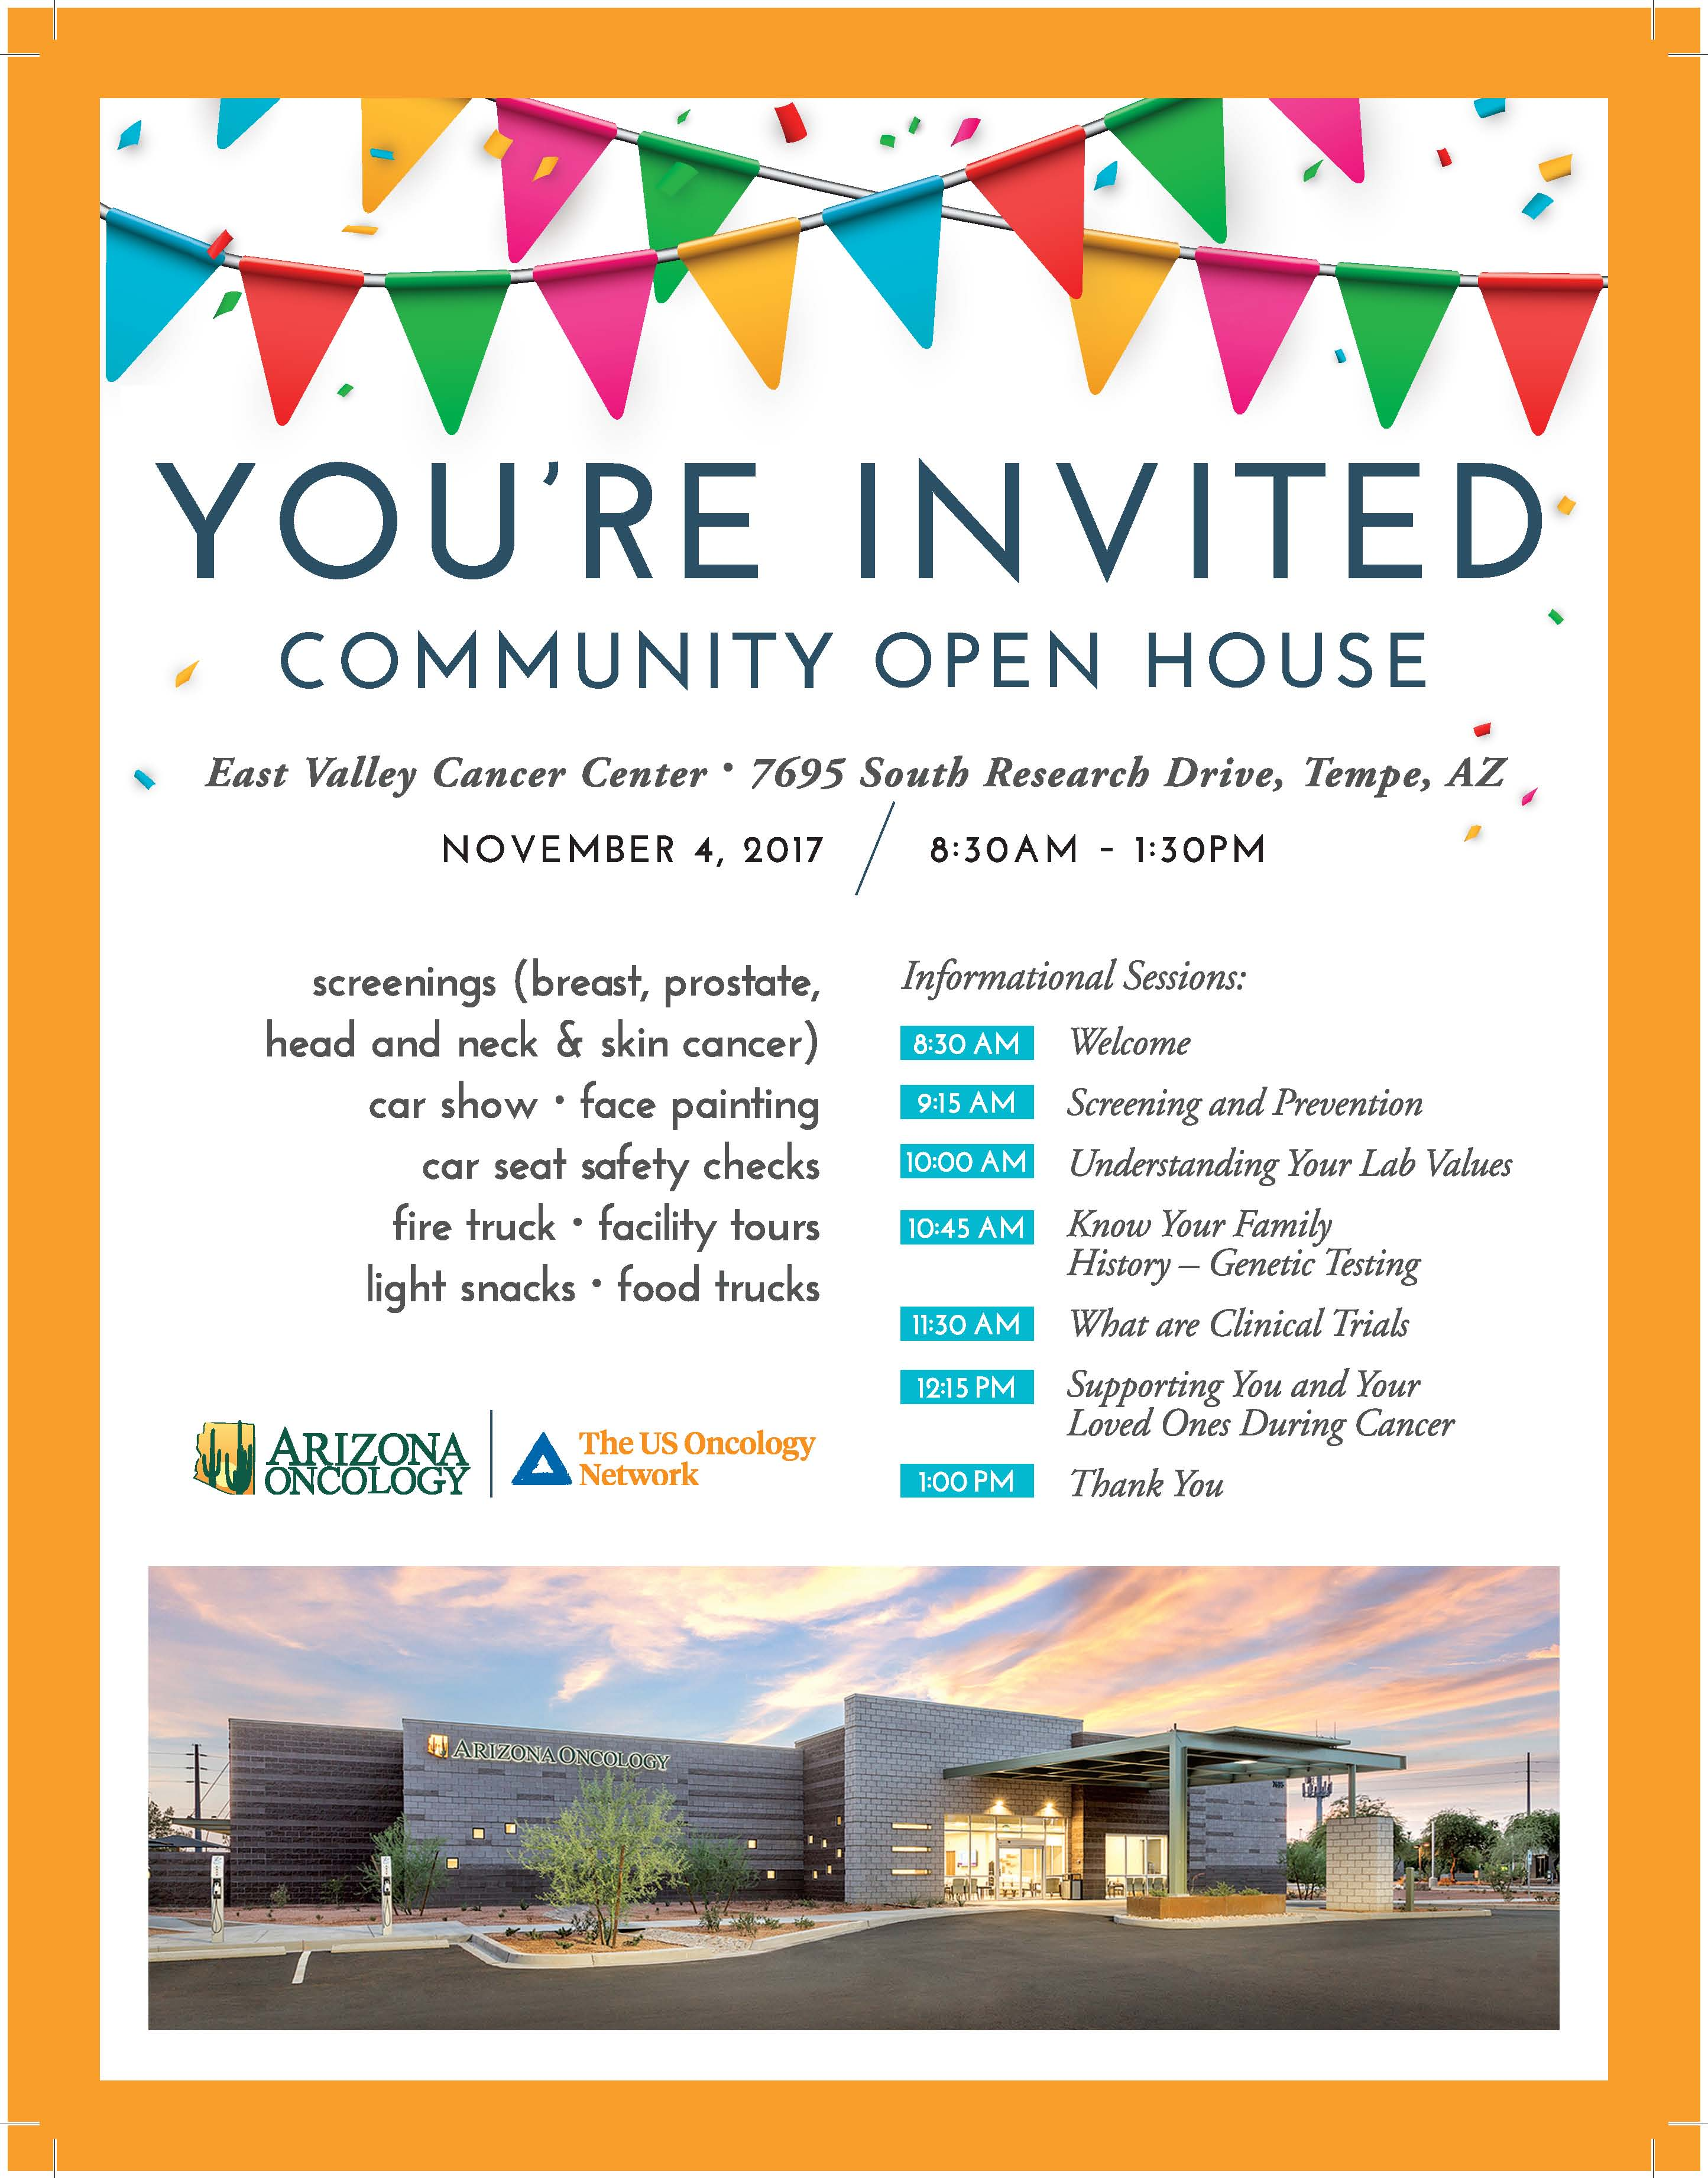 COMMUNITY OPEN HOUSE AT OUR EAST VALLEY CANCER CENTER